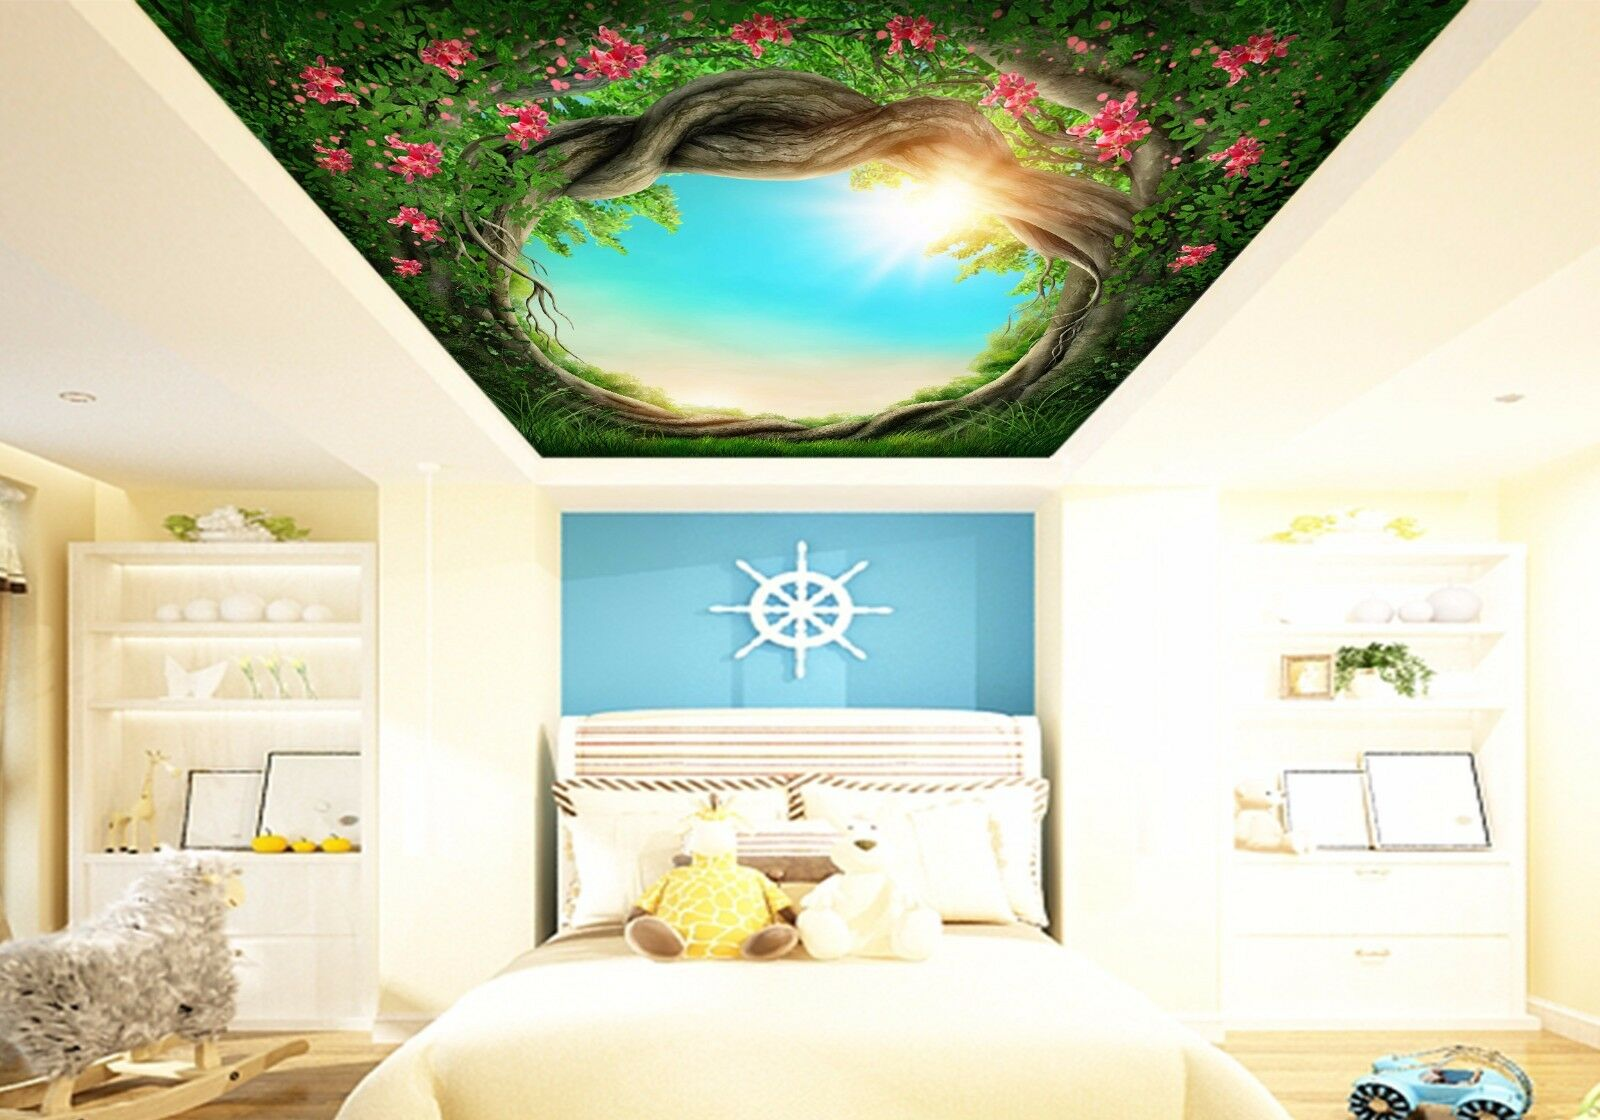 3D Cave Sun 558 Ceiling WallPaper Murals Wall Print Decal Deco AJ WALLPAPER UK